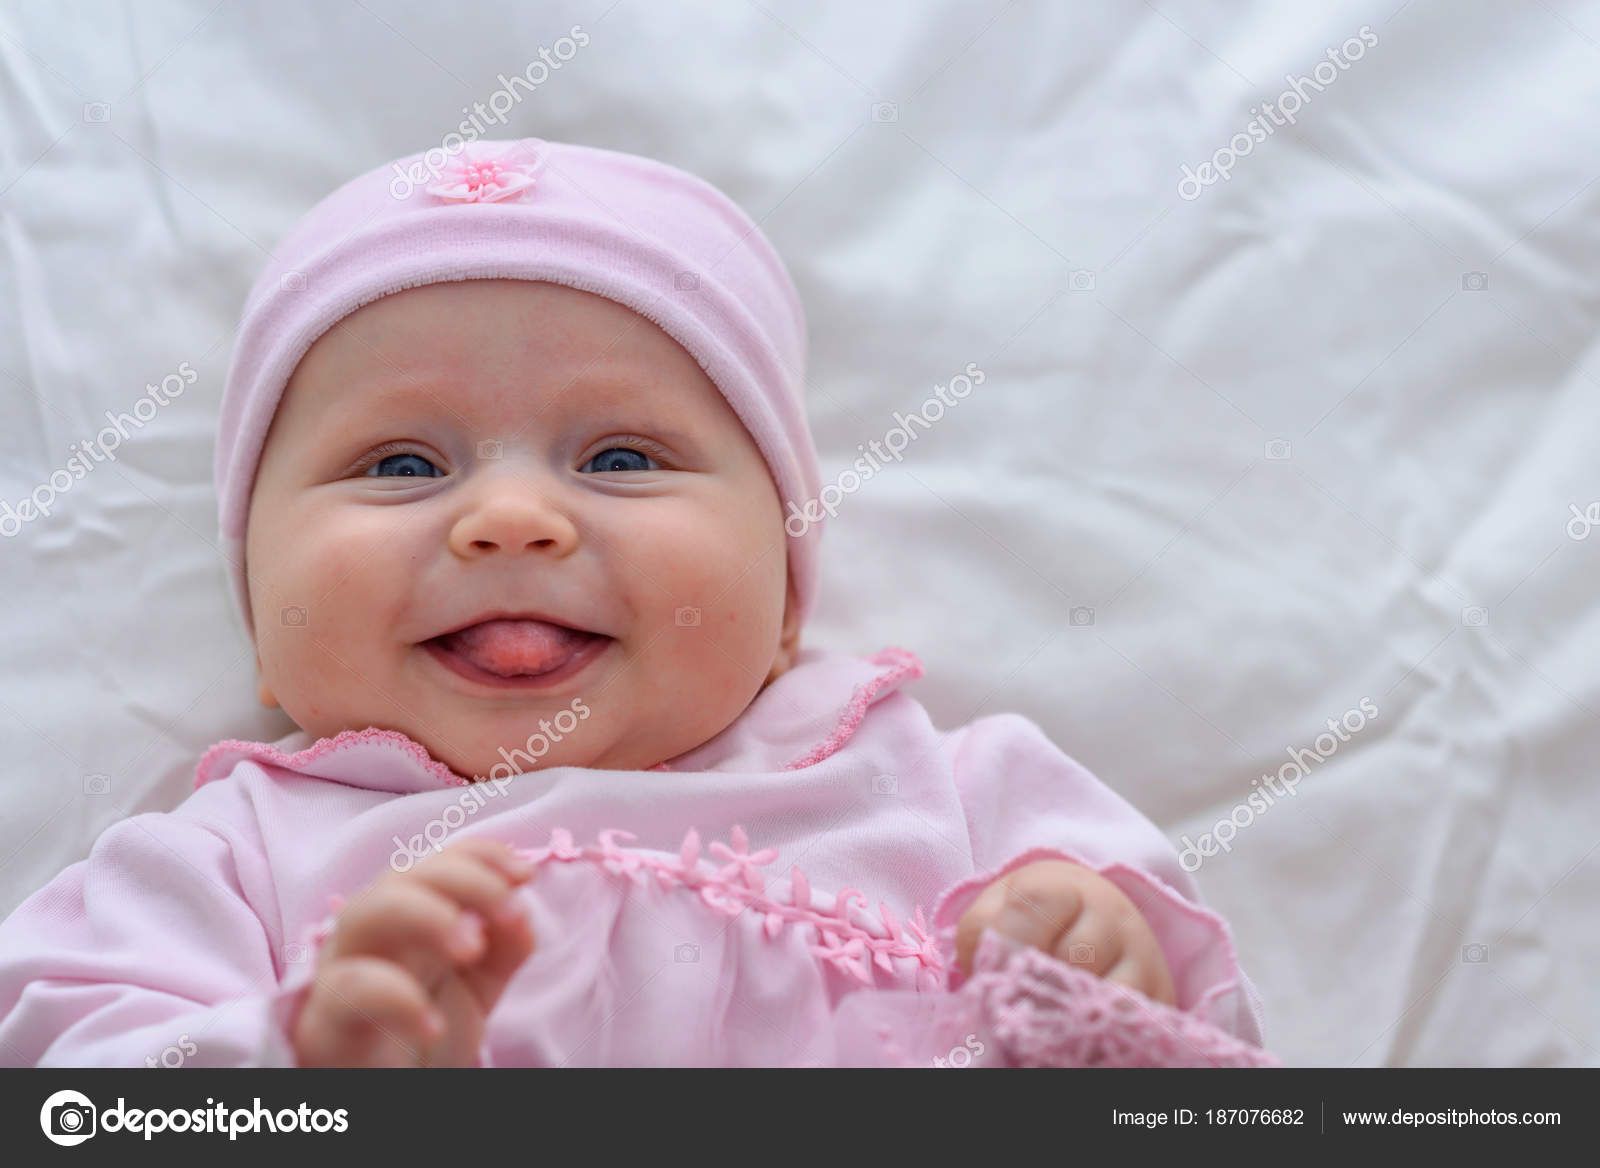 cute baby girl portrait. sweet little girl all dressed in pink cloth